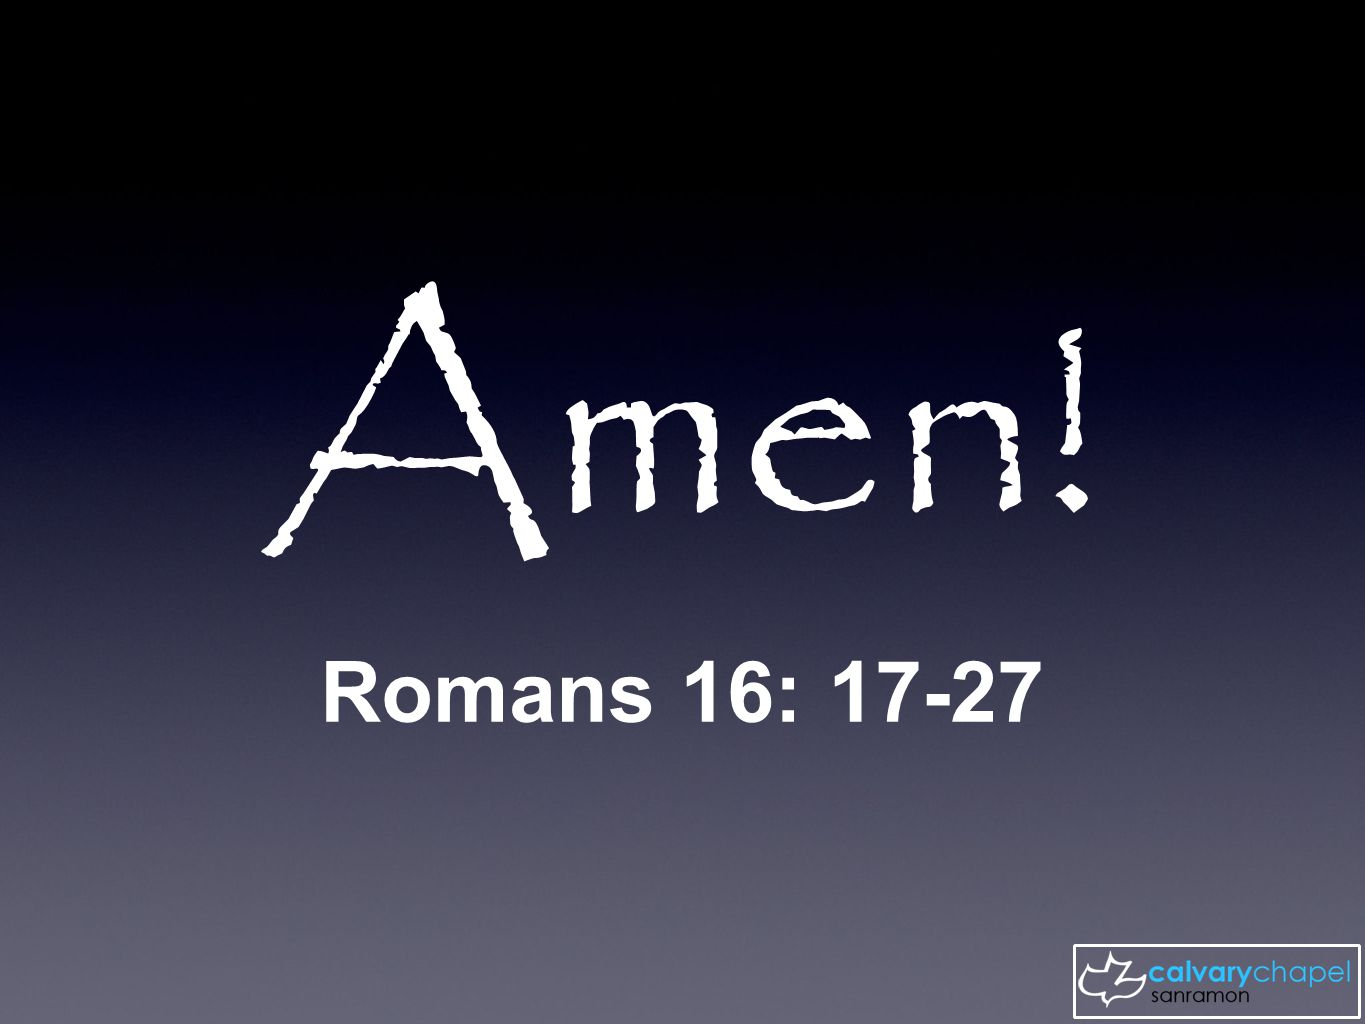 Amen - so be it / truly Romans 10:17 ...faith comes from hearing the message, and the message is heard through the word of Christ. We've learned of: Problem Solution Struggle Reward